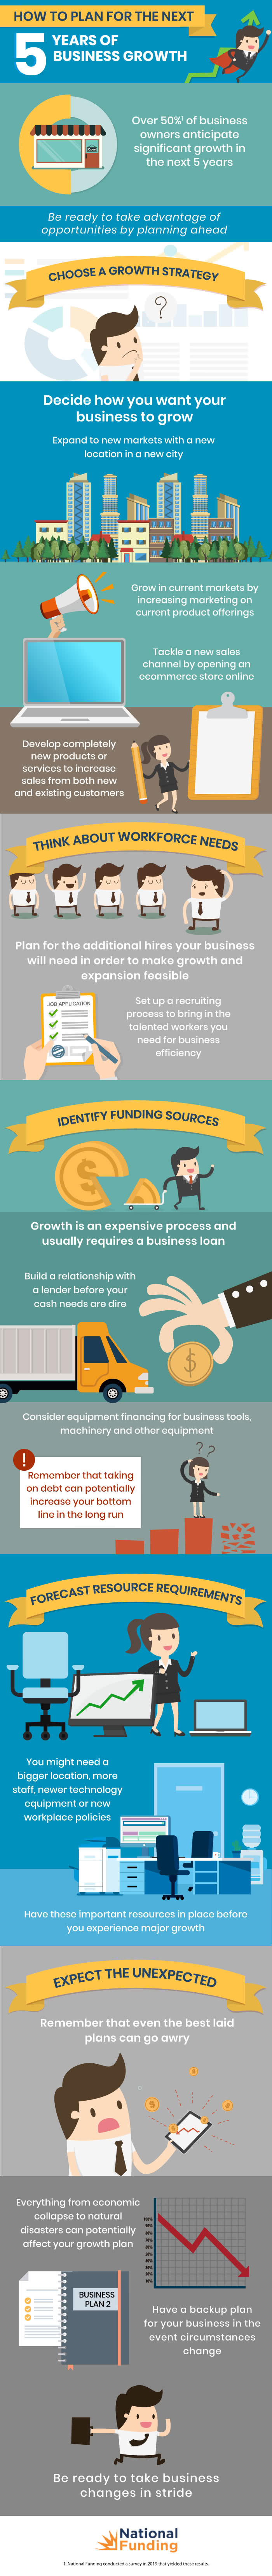 Business growth planning infographic.